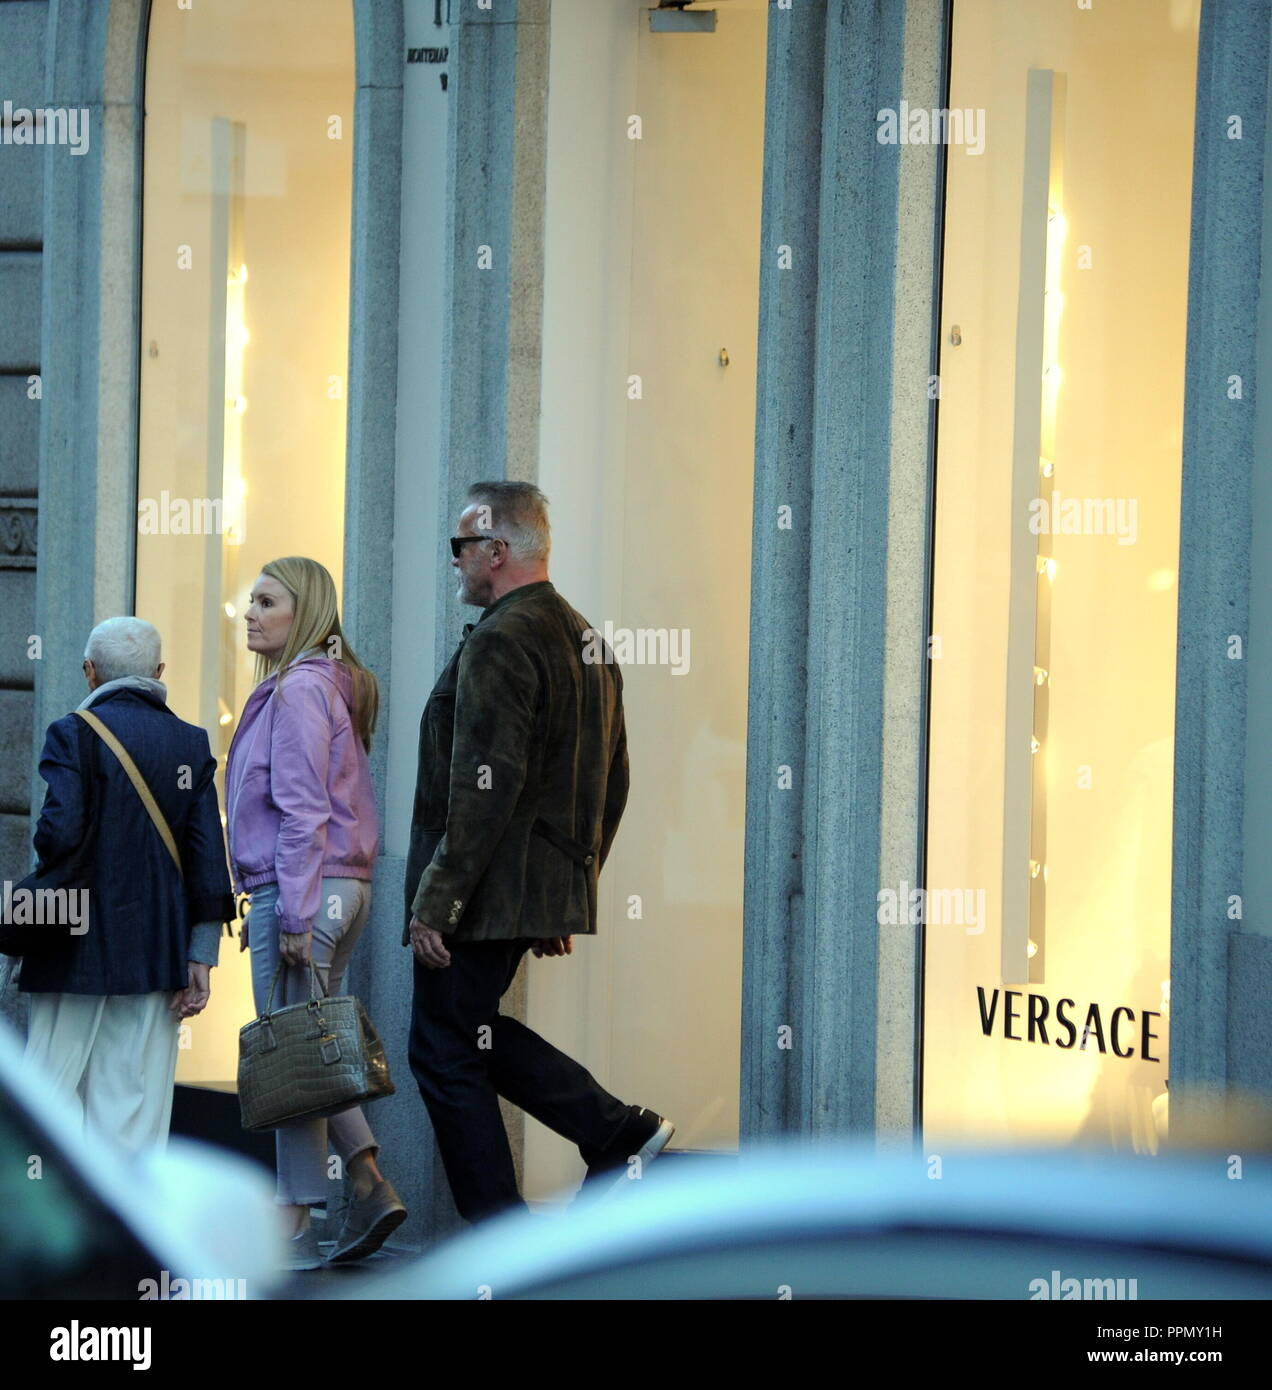 Milan, Italy. 26th September 2018. Milan, Arnold Schwarzenegger and Heather Milligan shopping in the center Arnold Schwarzenegger, visibly tired and with a long beard, was operated urgently with a heart surgery opened 6 months ago. Today he arrived in town together with his girlfriend Heather Milligan, and together with two bodyguards he allowed himself a few hours of shopping in the center, in via Montenapoleone. Credit: Independent Photo Agency Srl/Alamy Live News Stock Photo